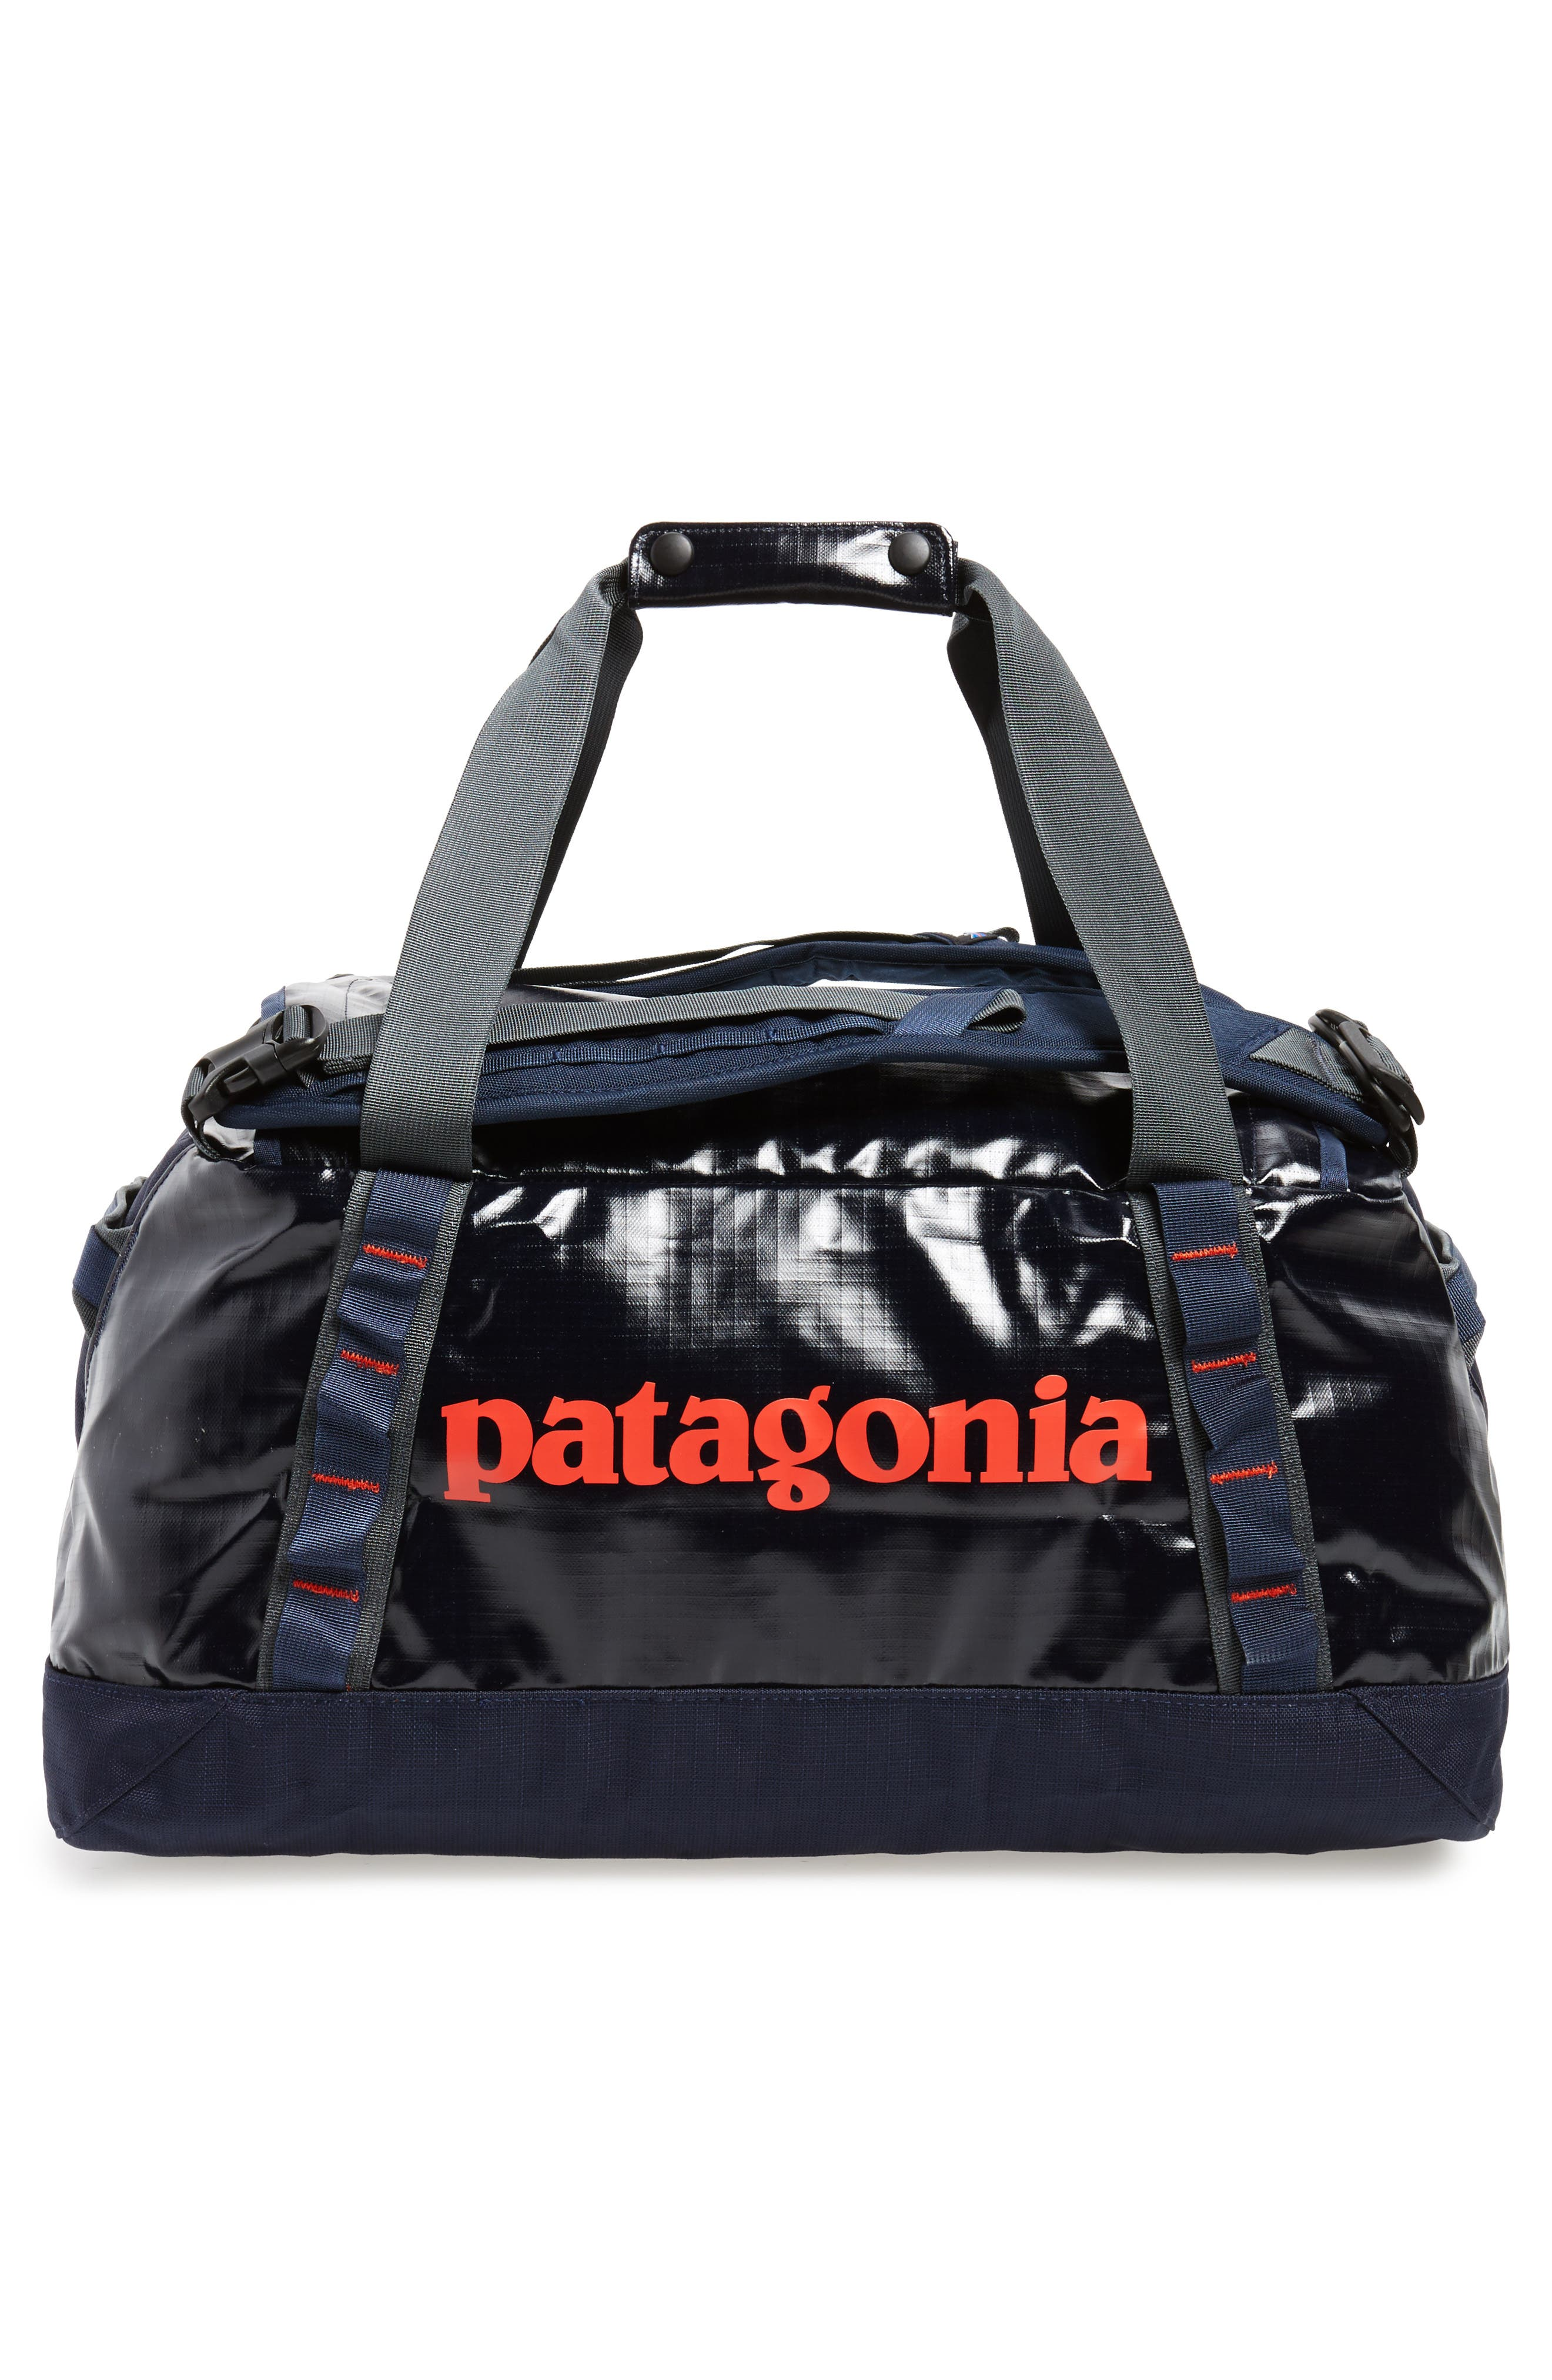 Black Hole Water Repellent Duffel Bag,                             Alternate thumbnail 2, color,                             Navy Blue W/ Paintbrush Red